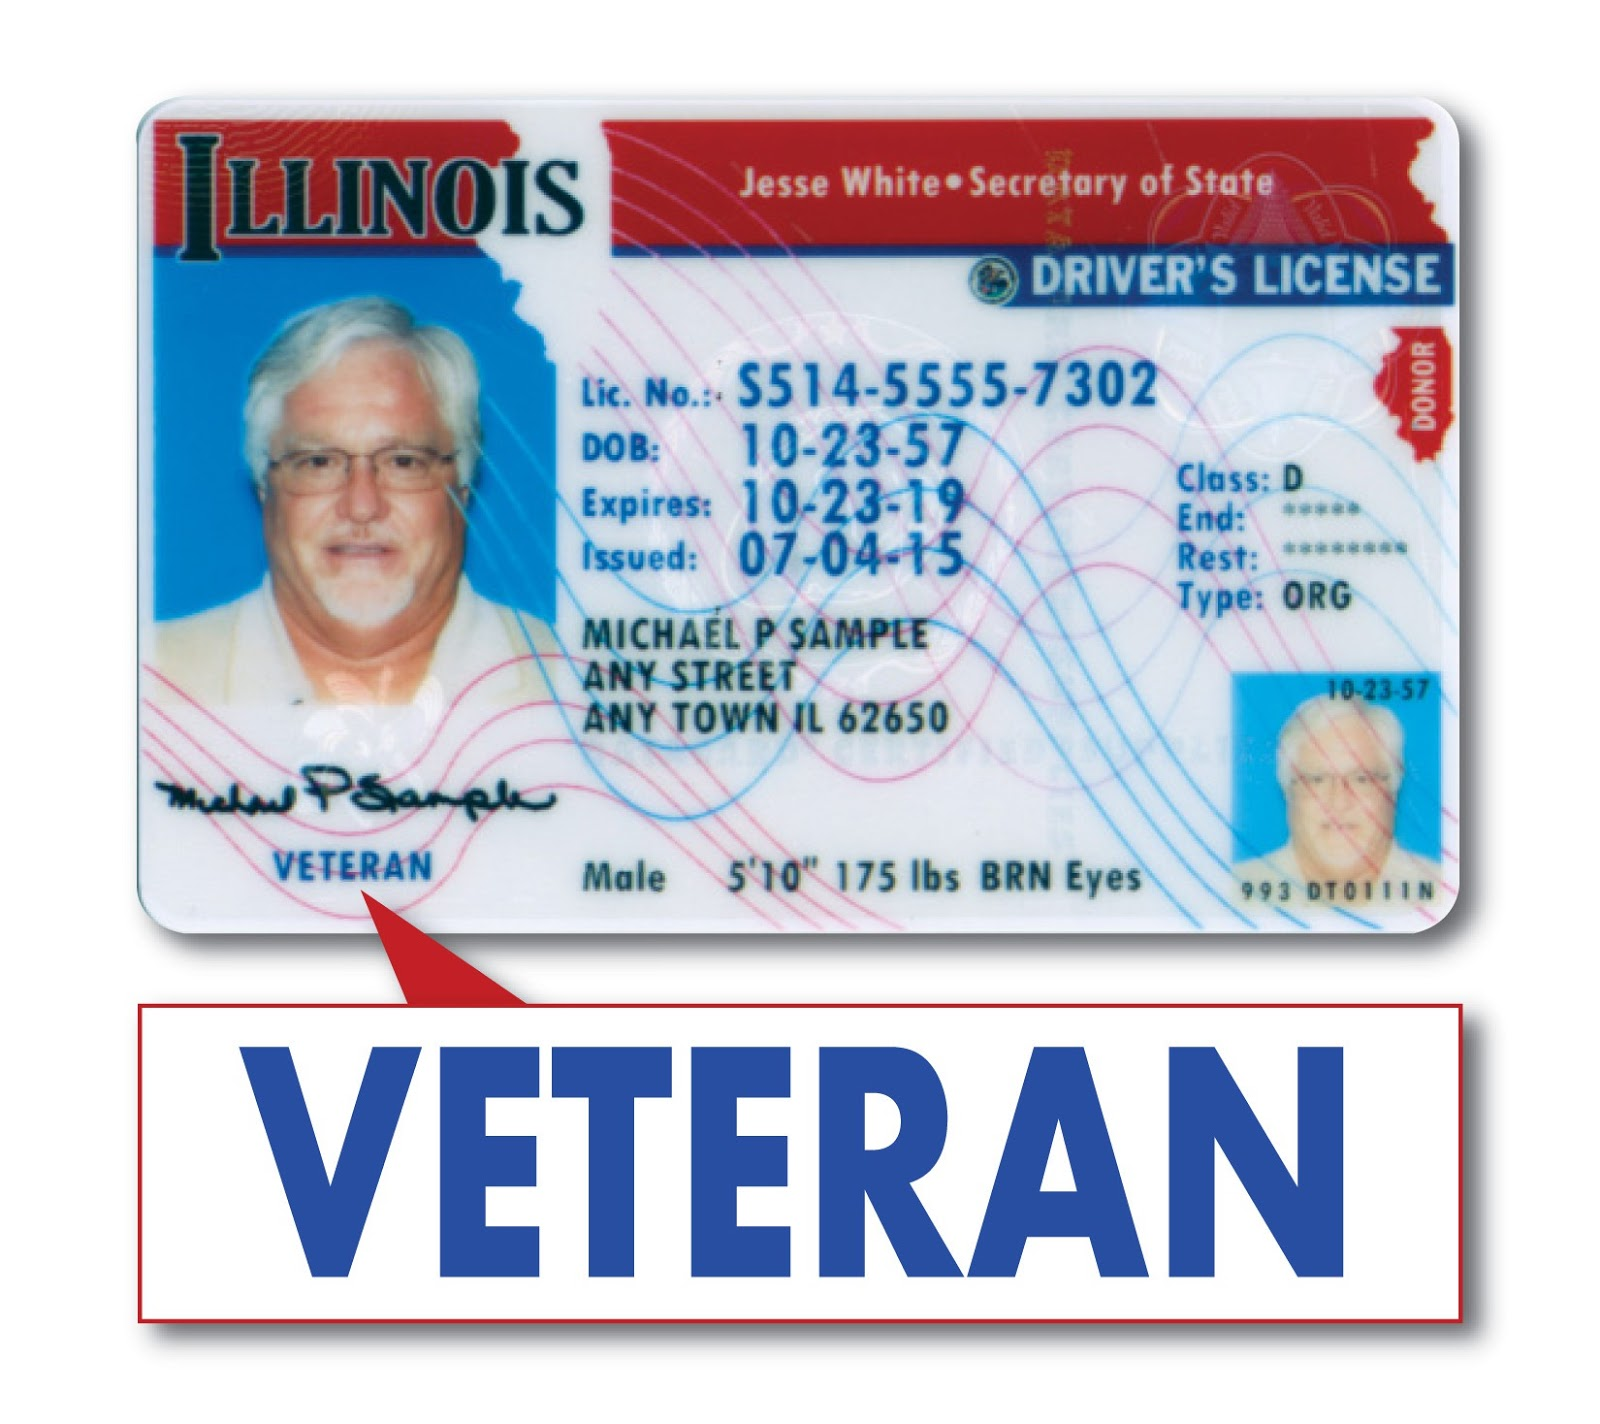 Ides illinois file my certification - Former Members Of The Guard And Reserve Who Do Not Have Any Periods Of Active Duty Other Than Their Initial Active Duty For Training And Annual Training Are